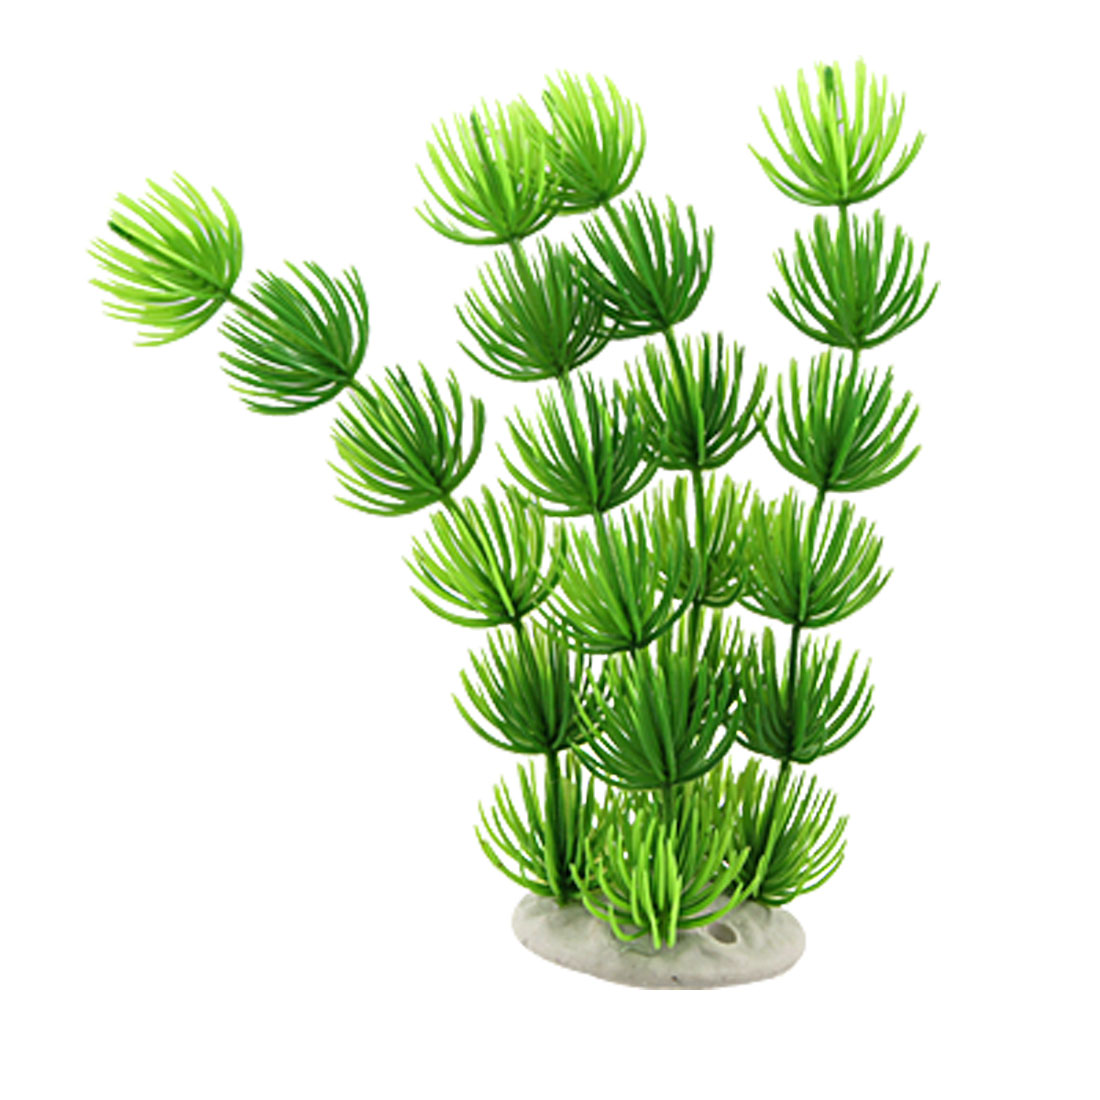 Green Plastic Grass Plants Ornament w Base for Aquarium